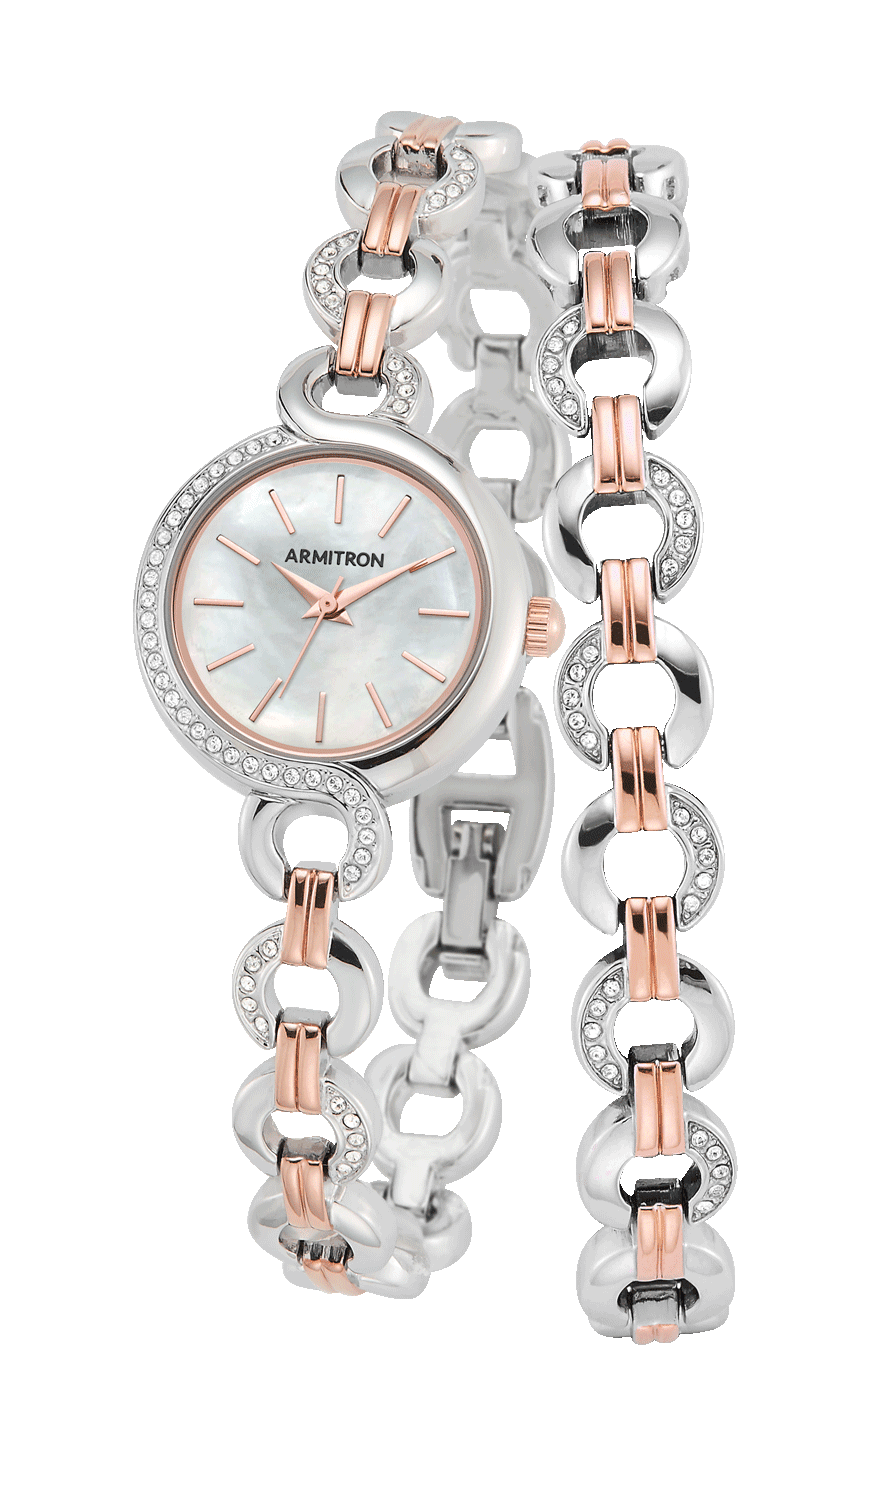 Armitron Two-Tone Watch and Bracelet Set